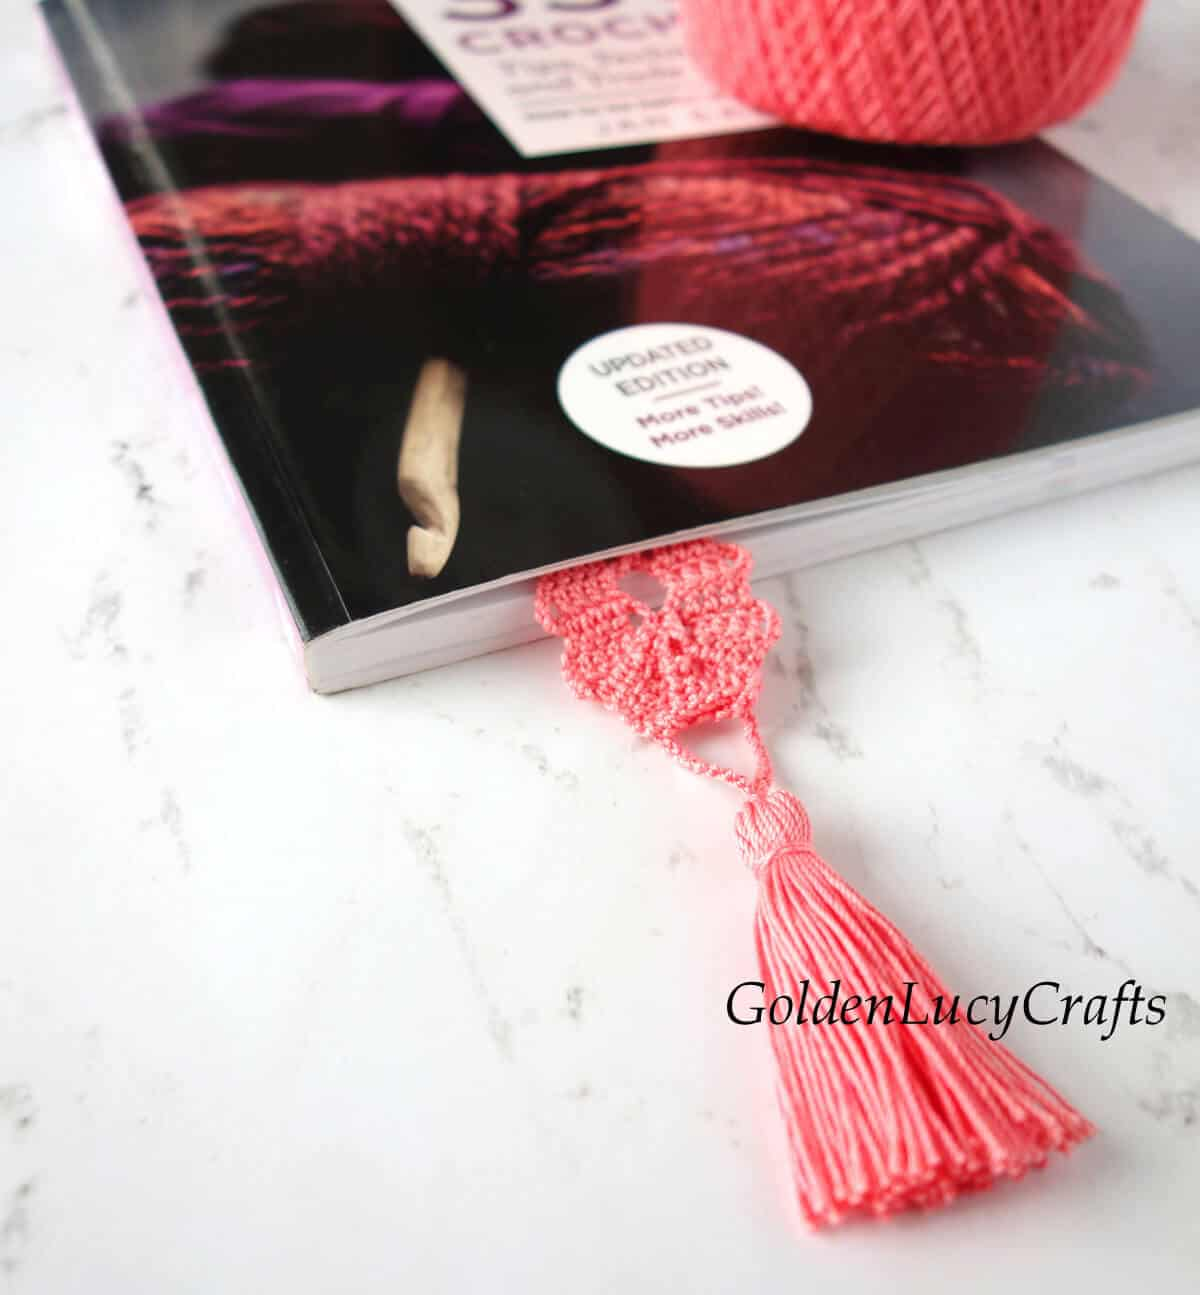 Book with crocheted bookmark in it.